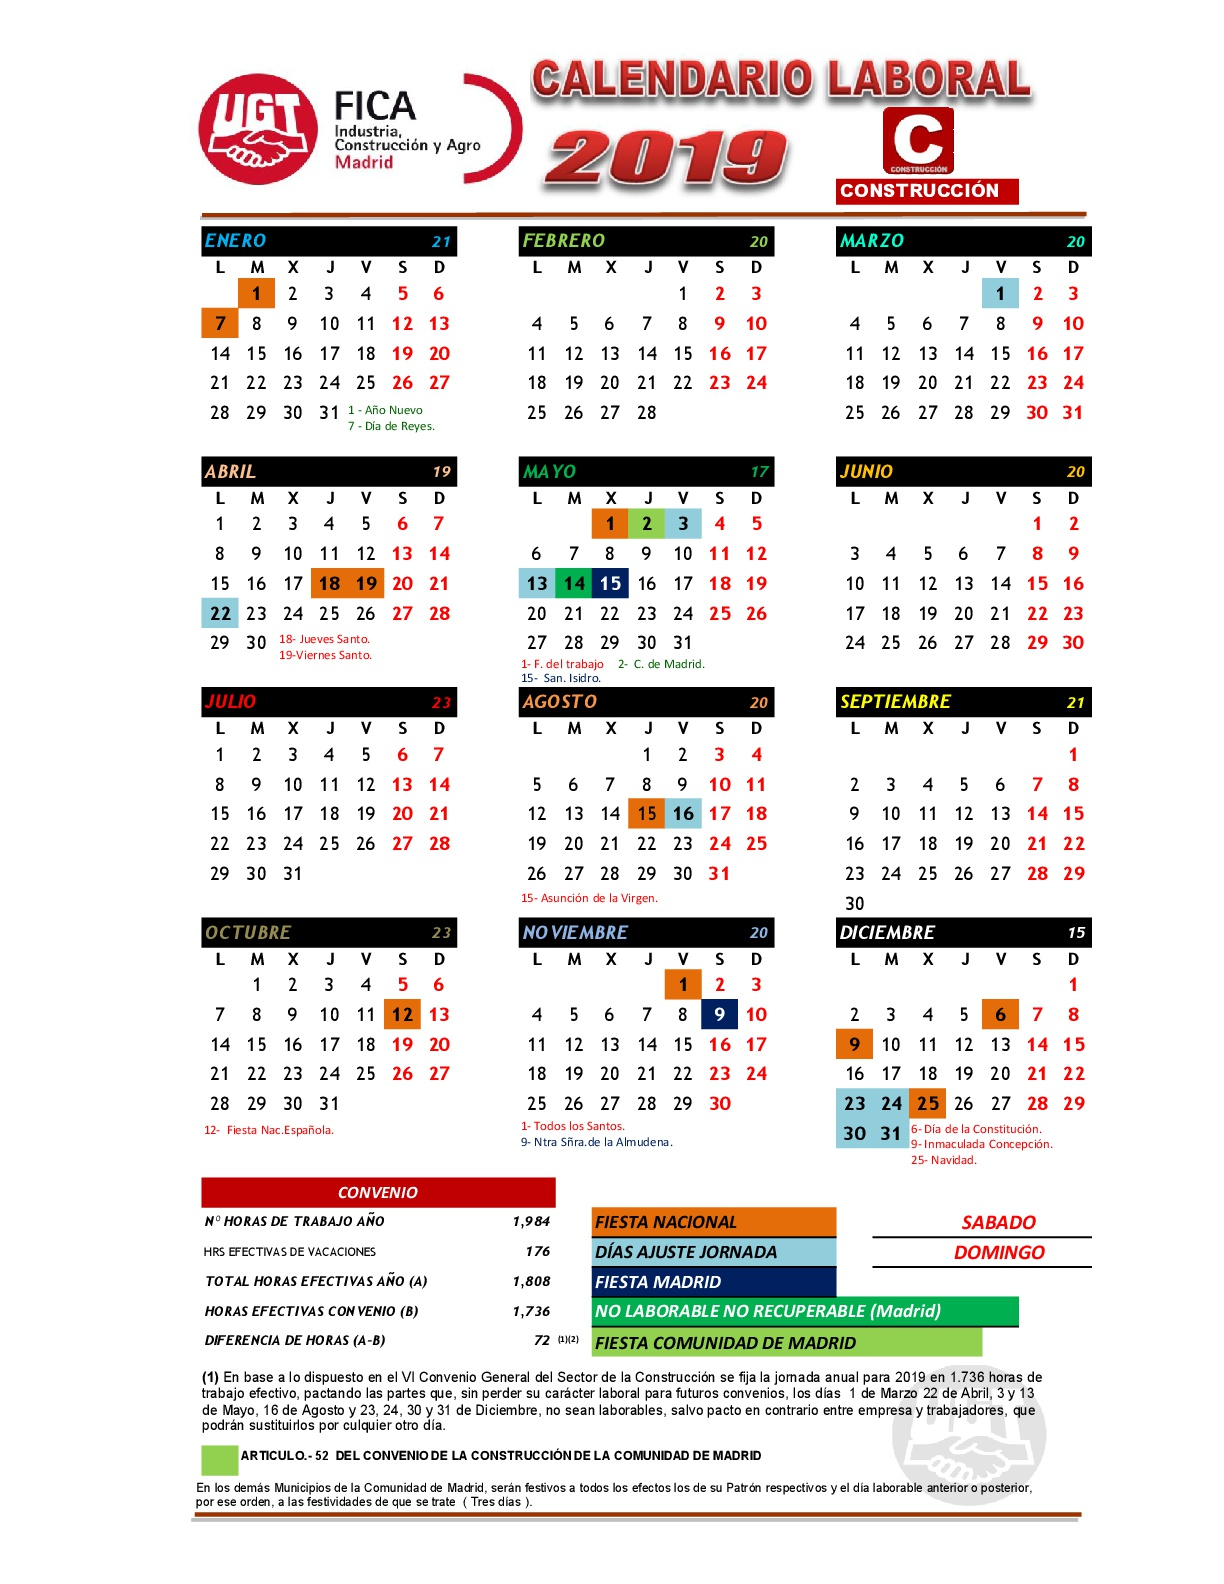 Calendario Laboral 2020 Madrid Ugt.Comite Acciona Centro 2018